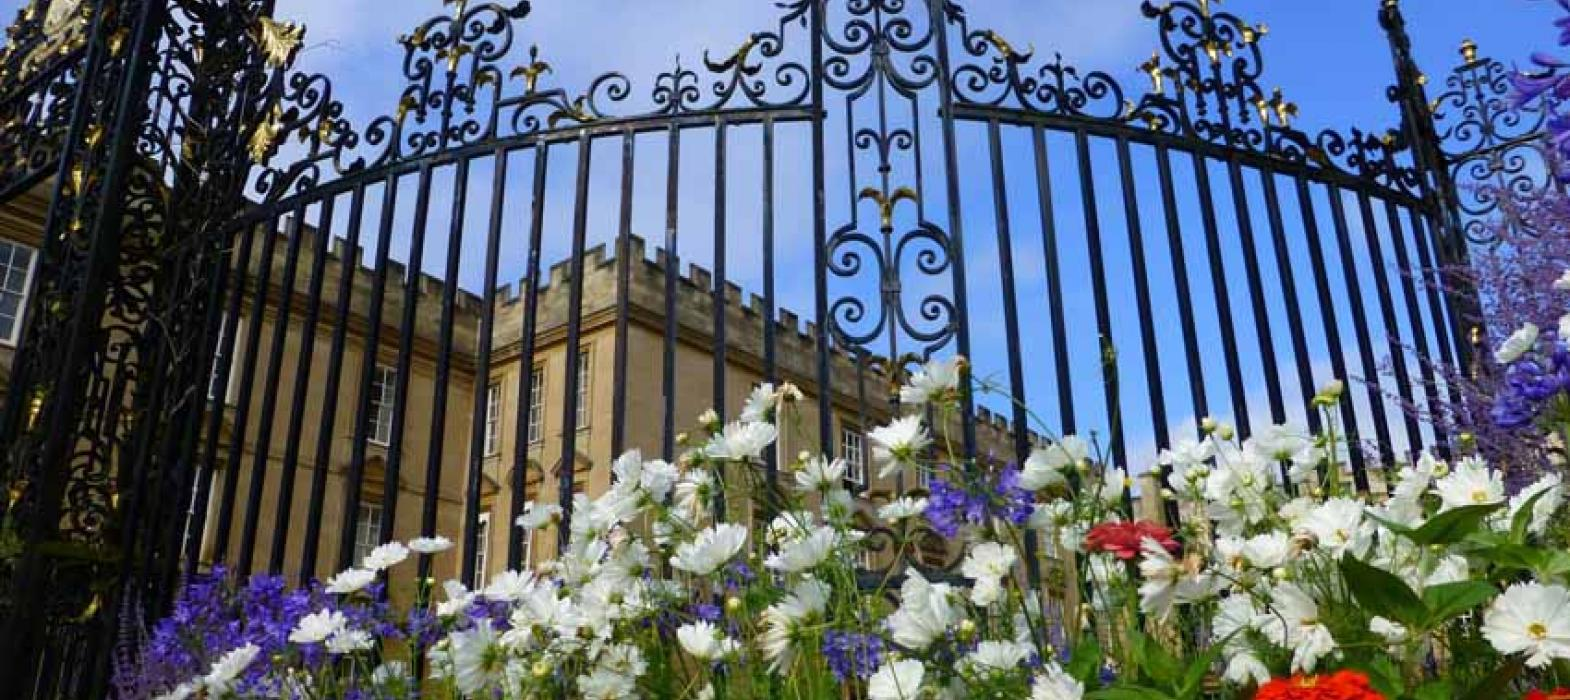 New College Gates